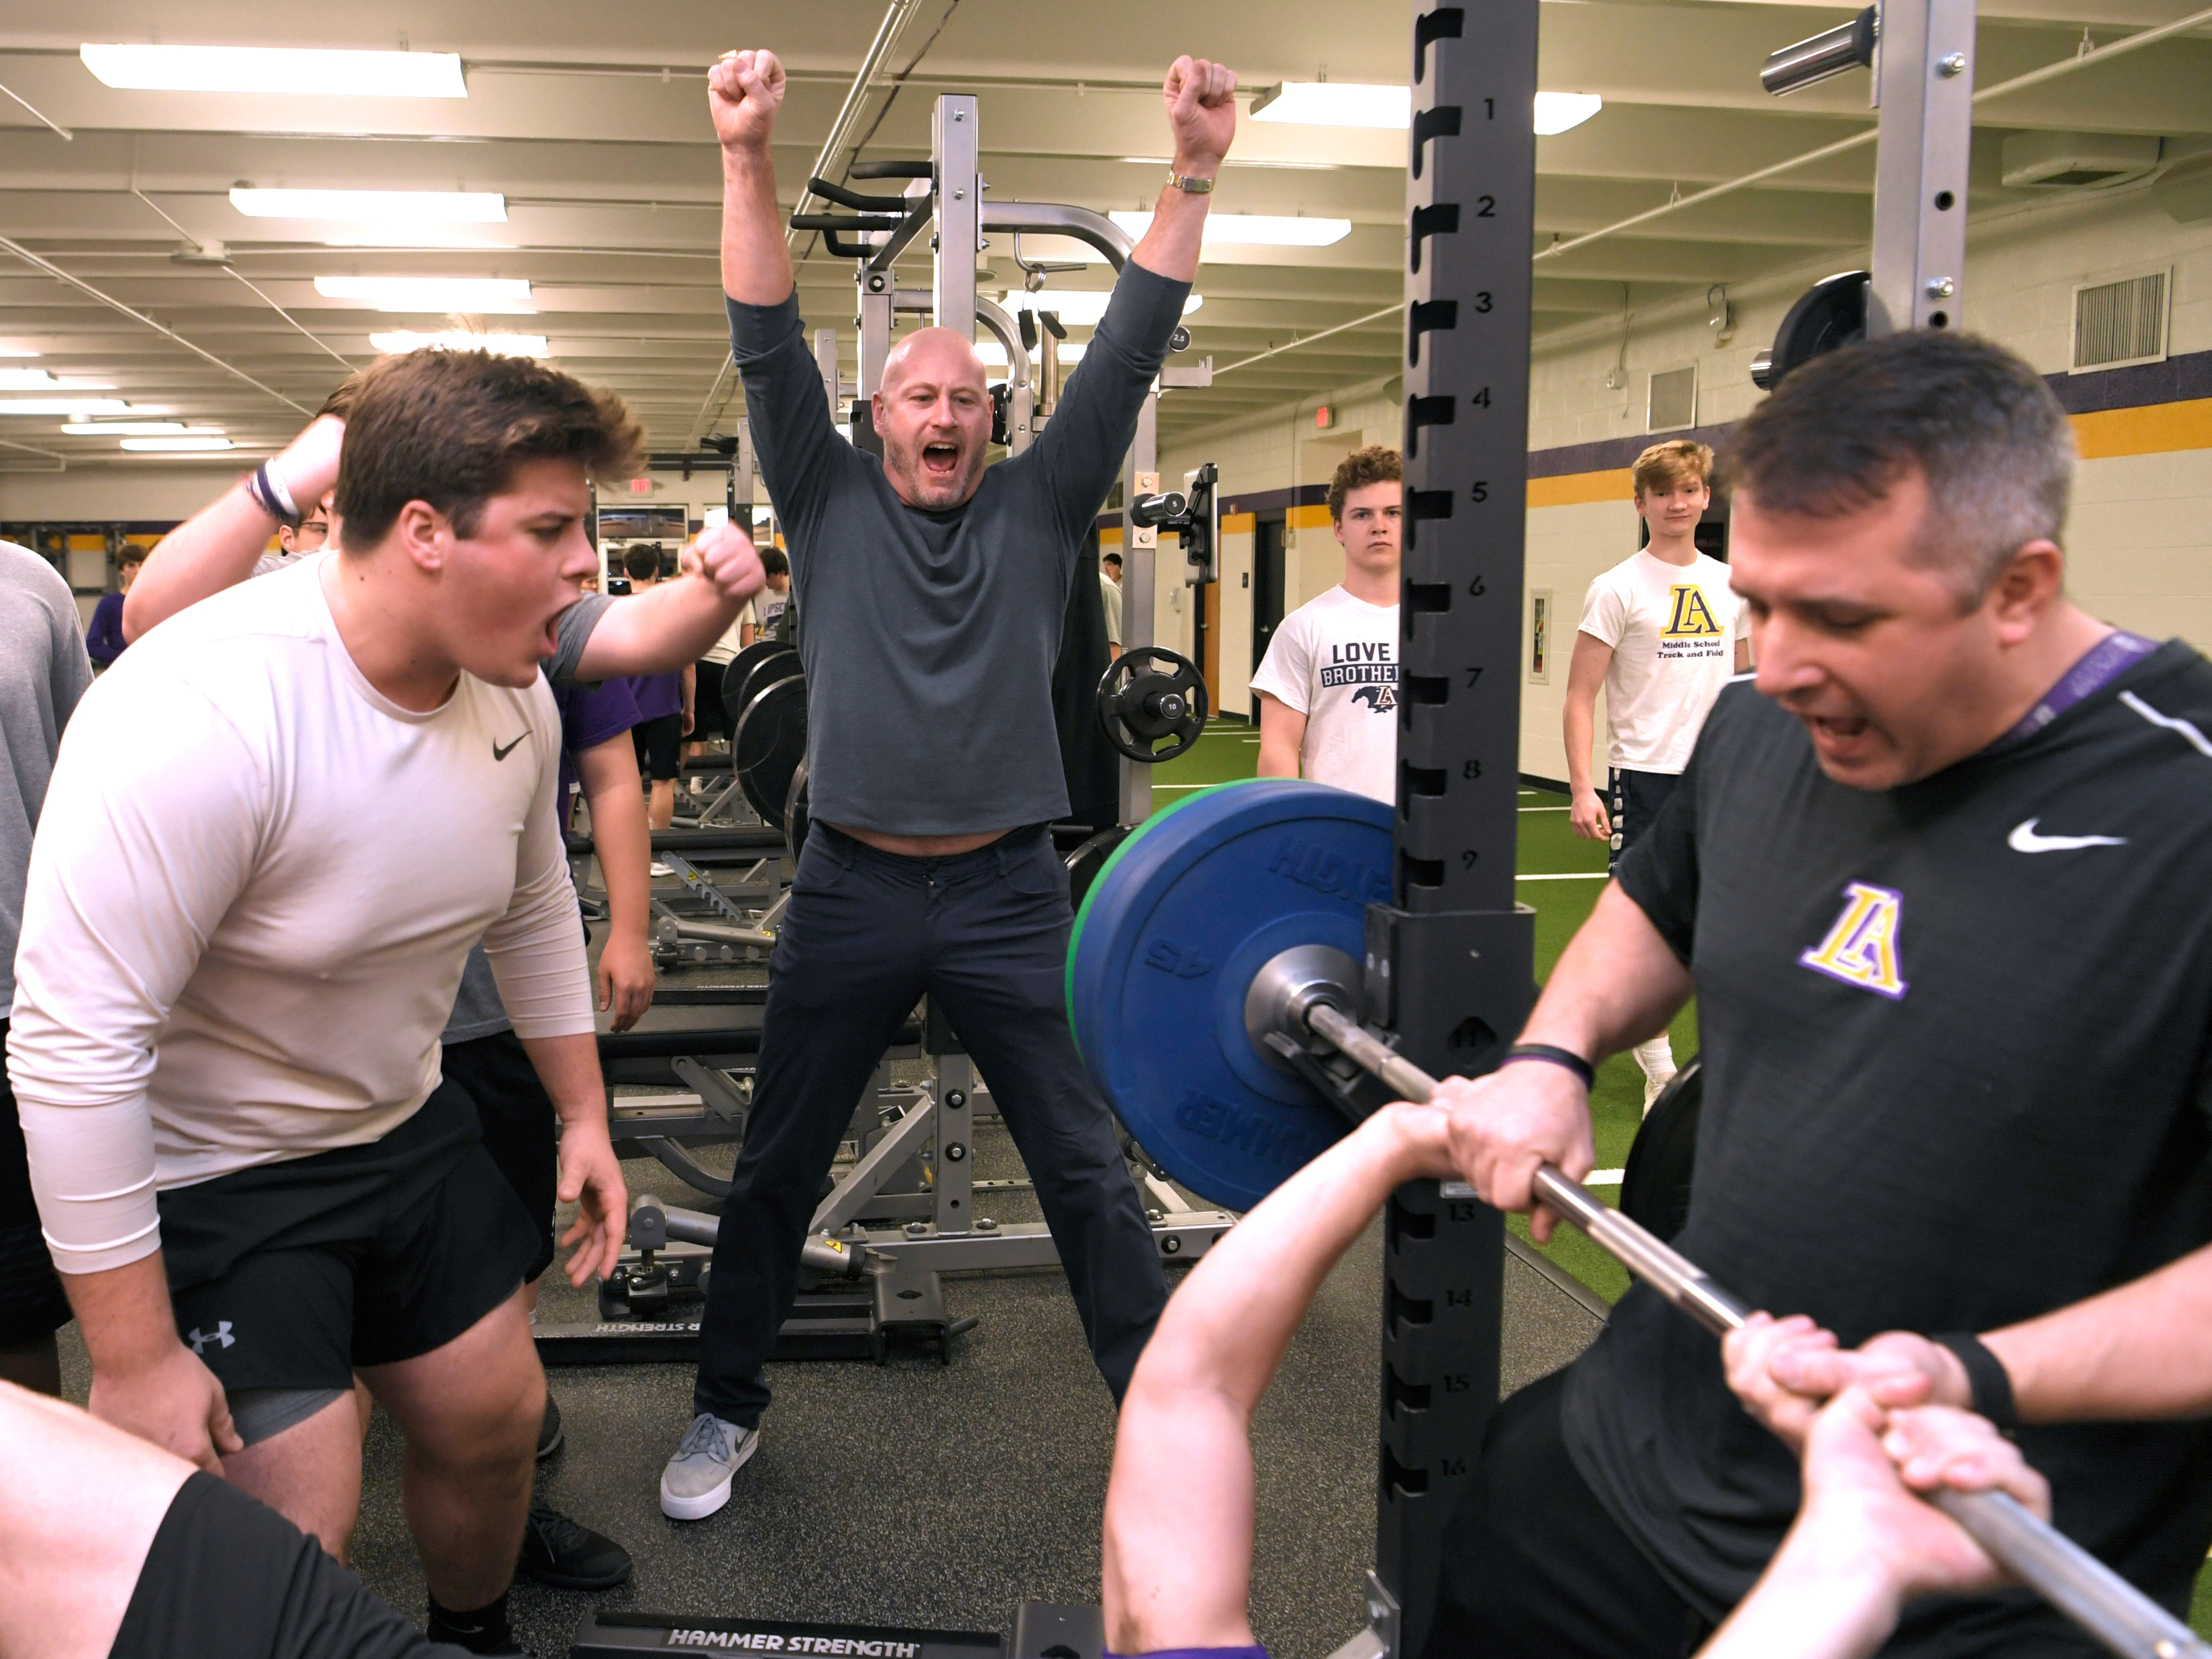 Former NFL player and Lipscomb Academy football coach Trent Dilfer cheers on his players during a morning weight training session at Lipscomb Academy in Nashville on Wednesday, Feb. 20, 2019.